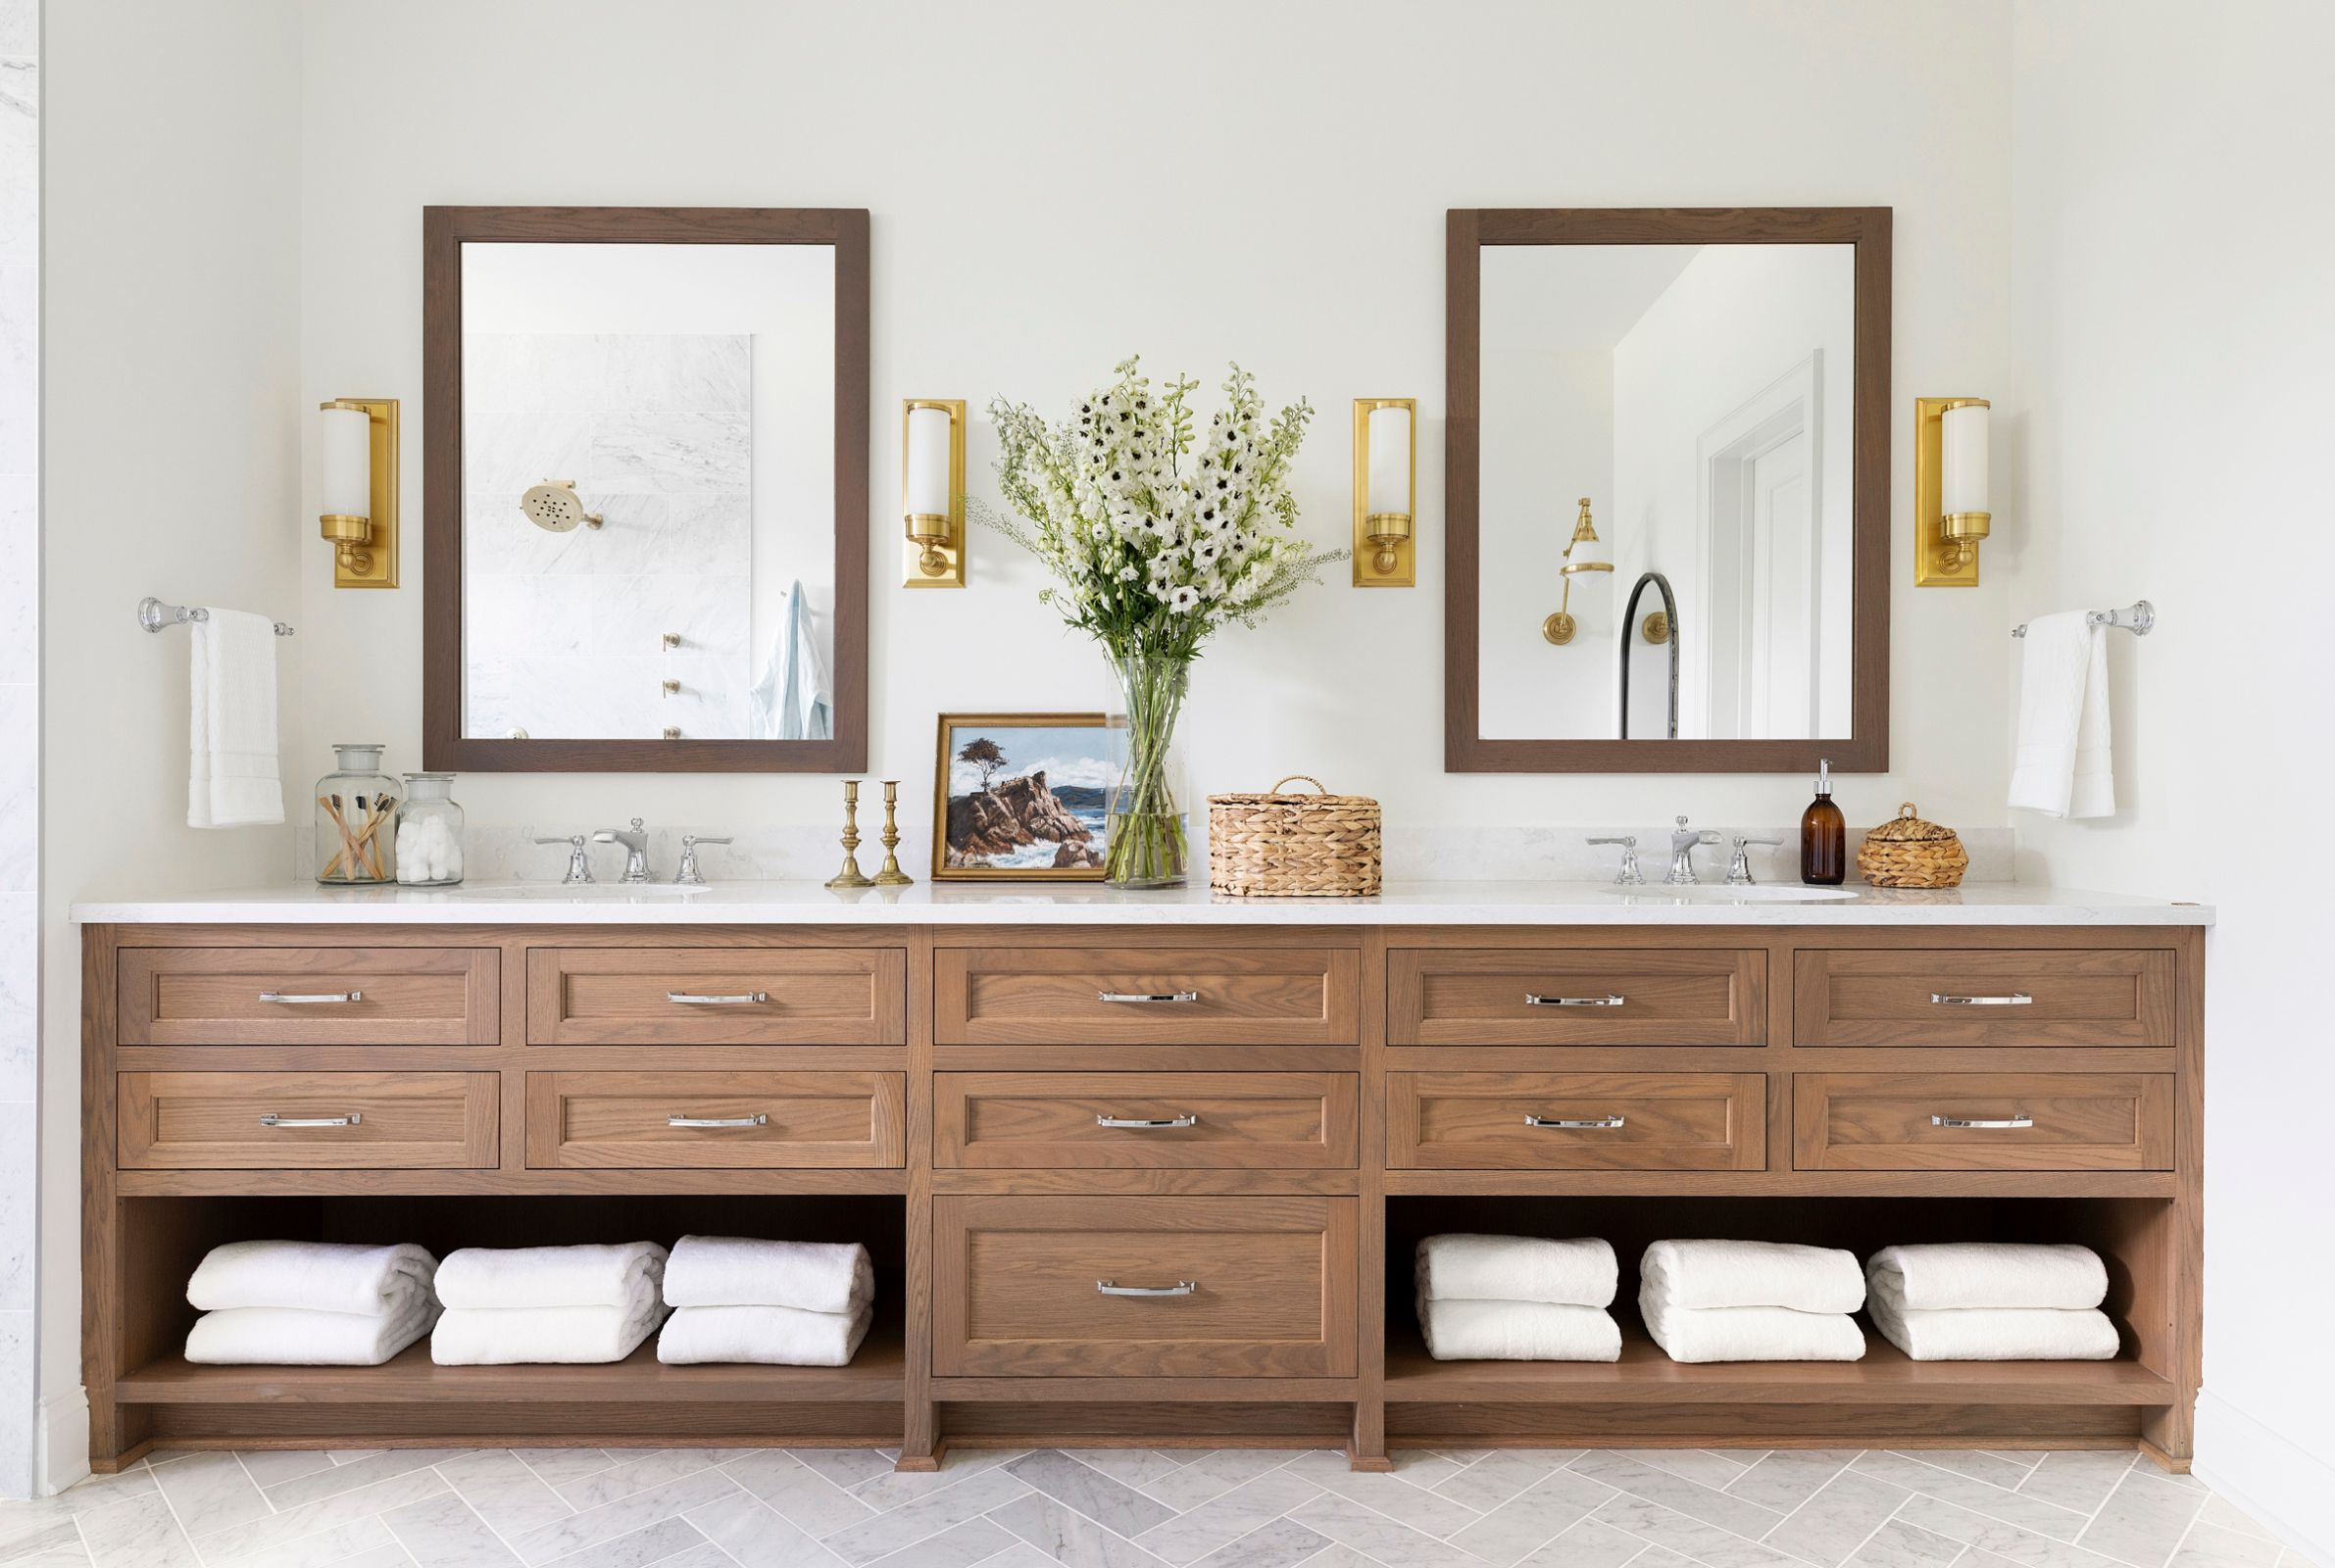 How To Design A Master Bathroom That Feels Like A Luxury Hotel Bria Hammel Interiors